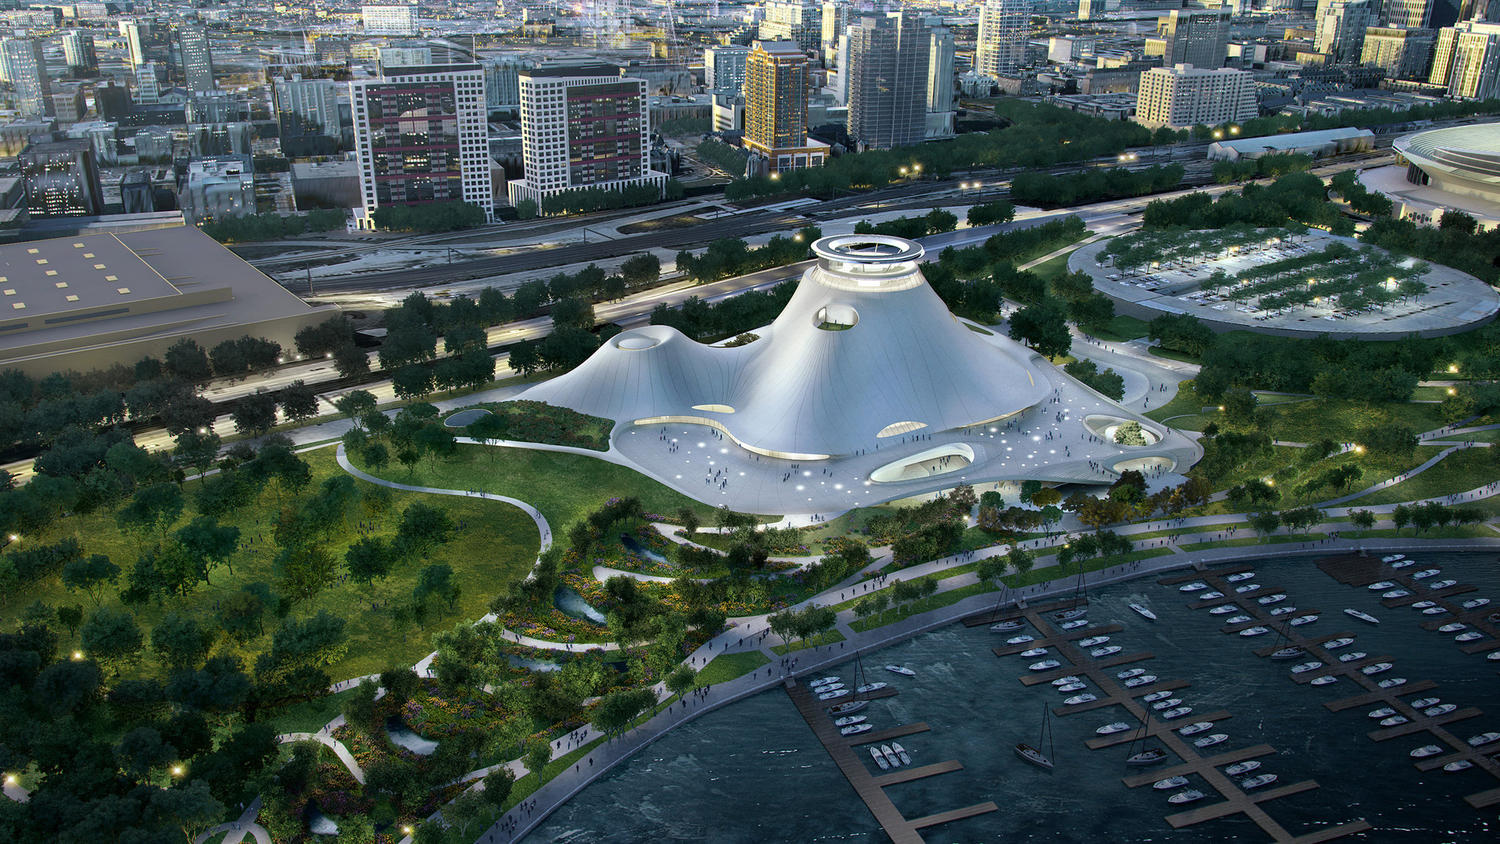 Lucas Museum may or may NOT come to Chicago